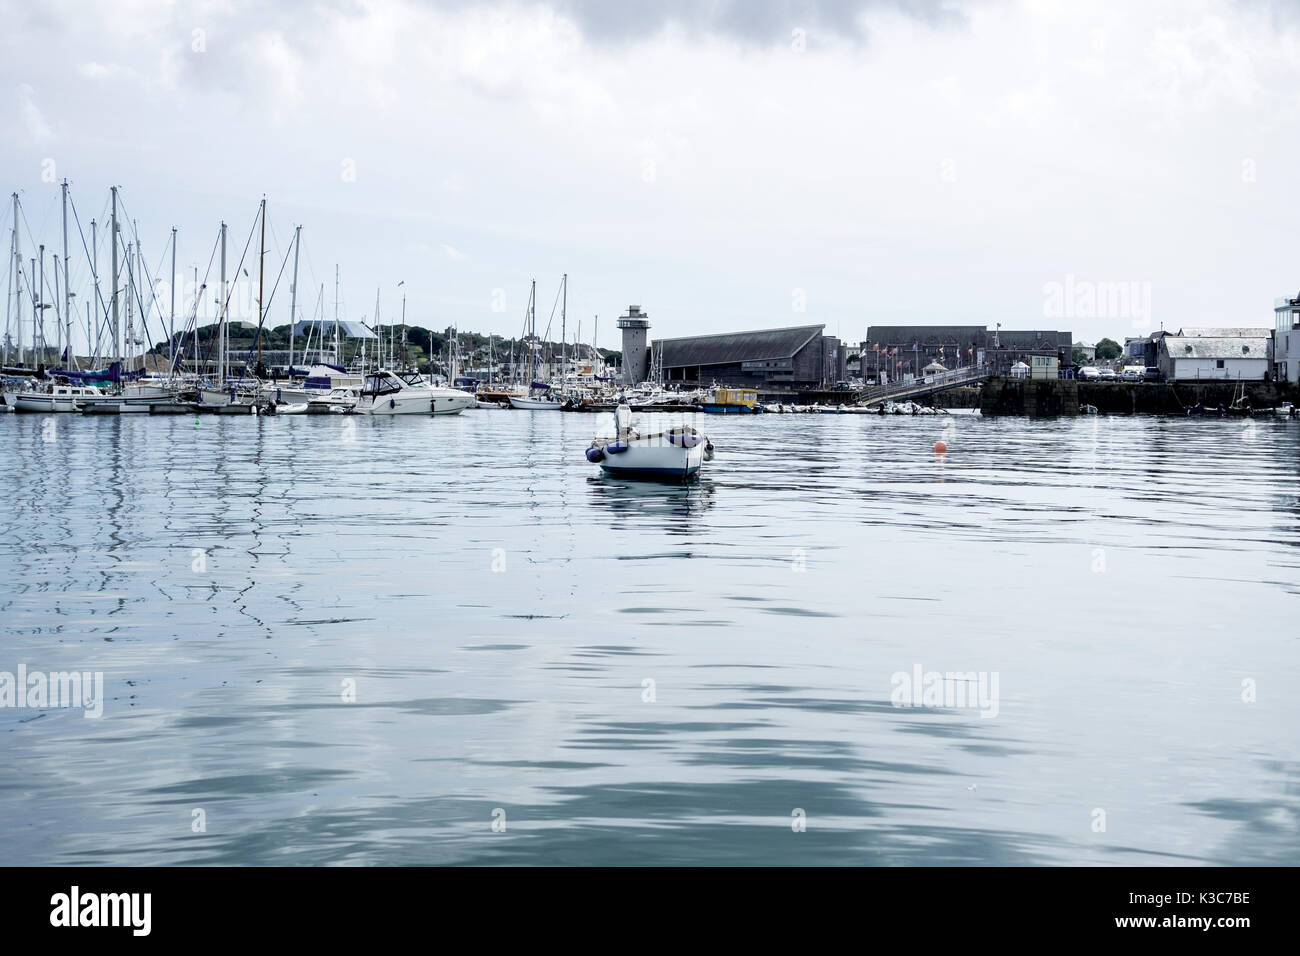 View of Falmouth Haven, a deep water mooring and leisure boat marina, on a clear and calm weather day. Stock Photo